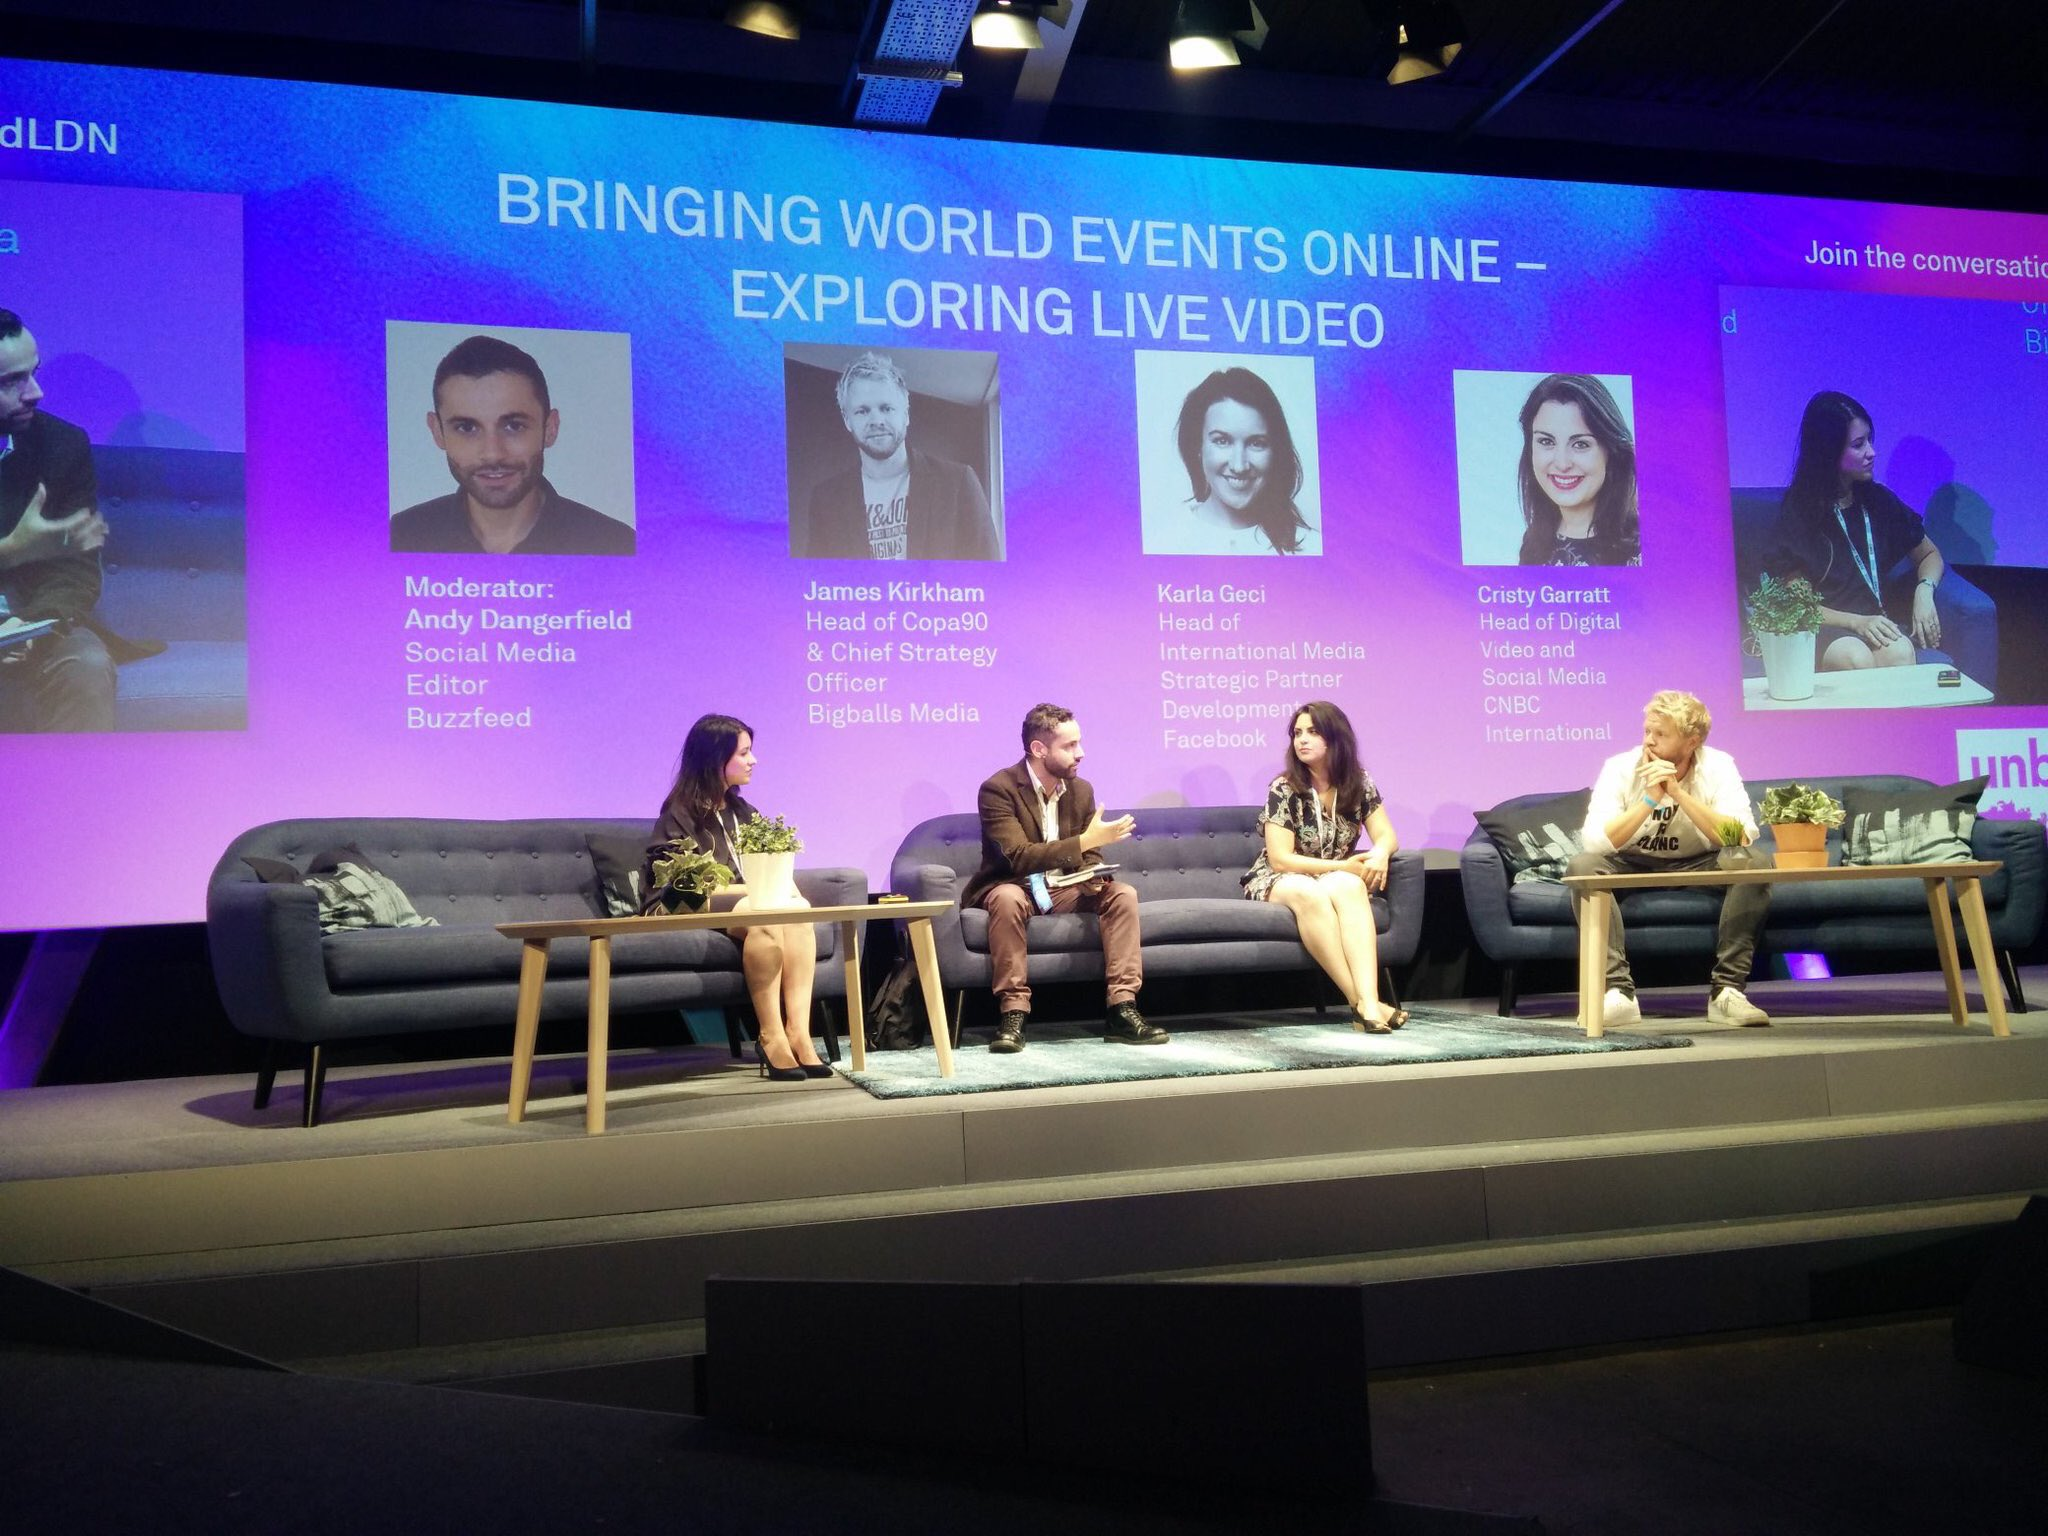 We're down at #UnboundLDN today, learning from some of the fastest reacting media brands https://t.co/5hniXpkhg6